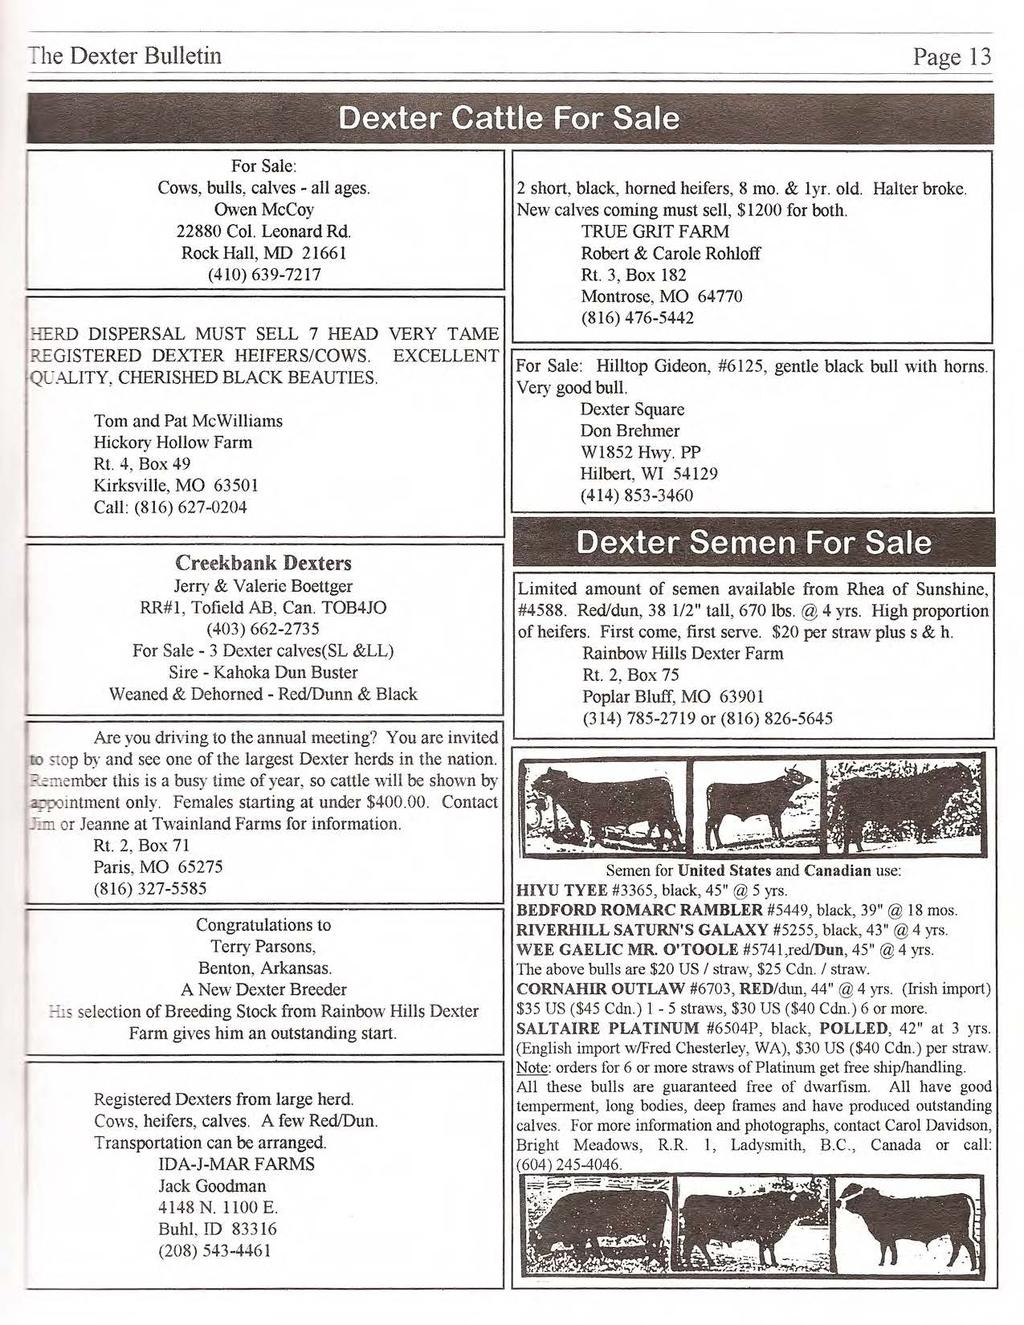 The Dexter Bulletin Page 13 For Sale: Cows, bulls, calves - all ages. Owen McCoy 22880 Col. Leonard Rd. Rock Hall,.